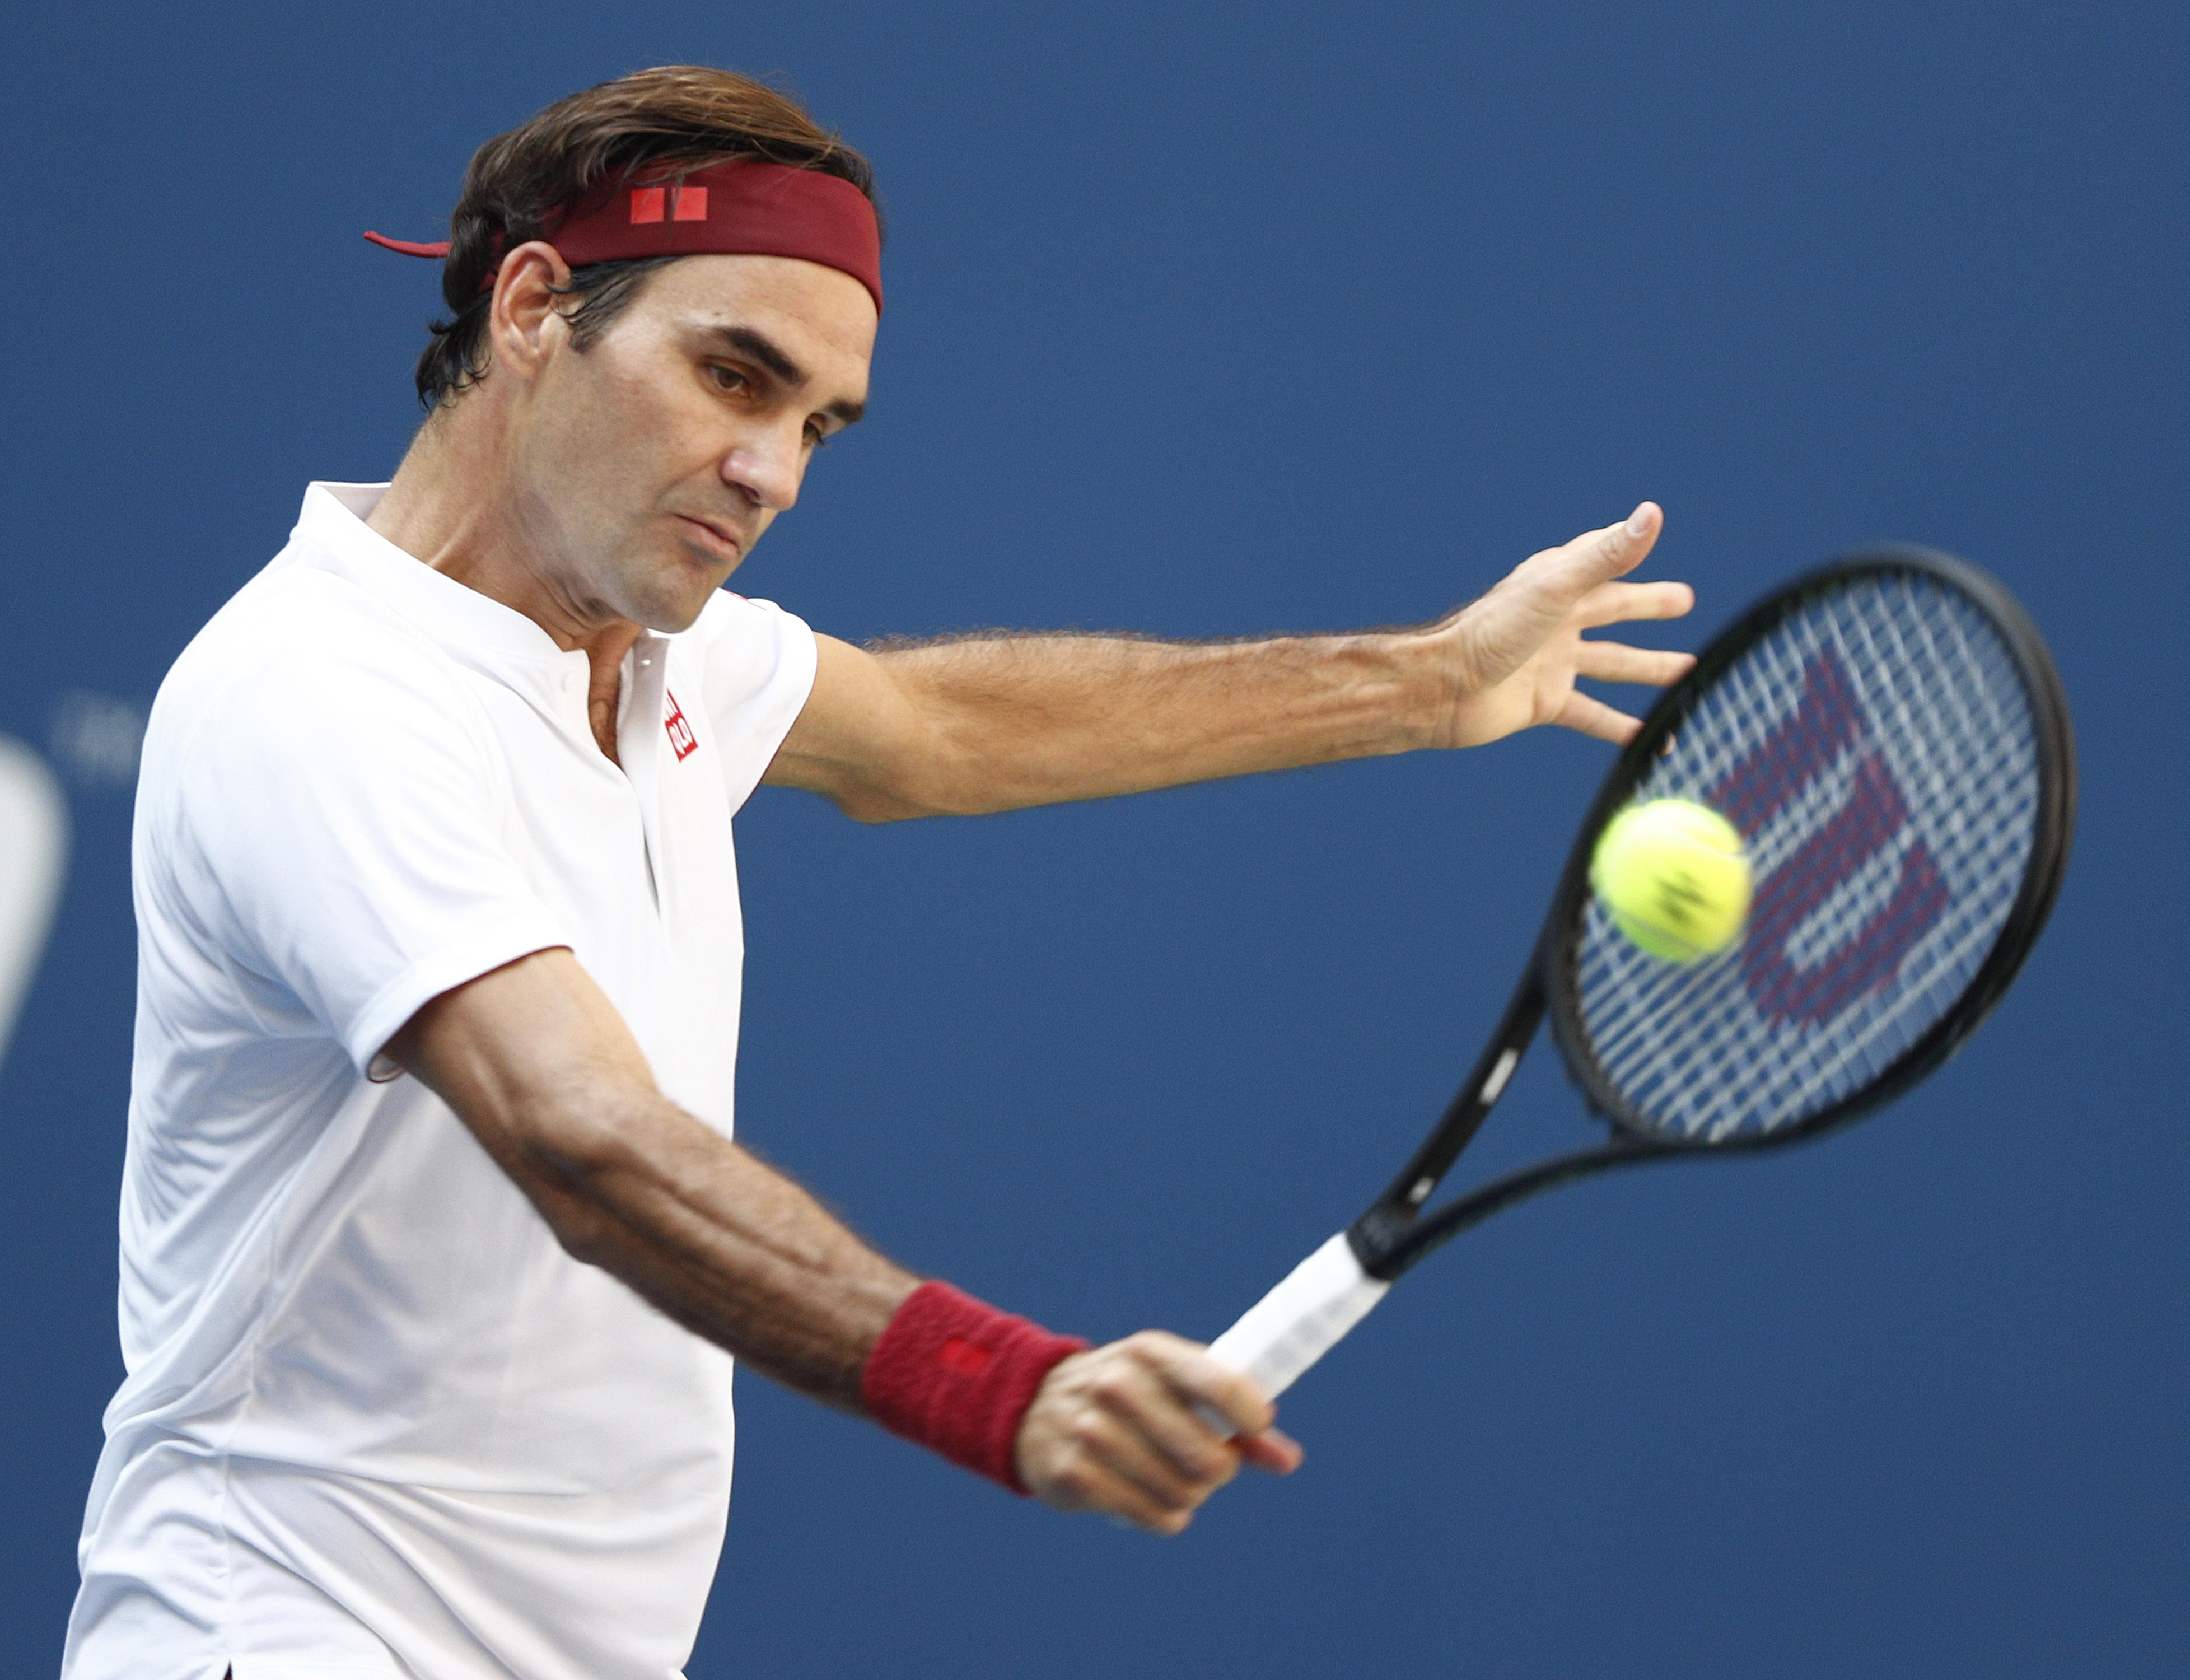 Federer hit an impressive 51 winners compared to Kyrgios 32 as he took the game to the 30th seed